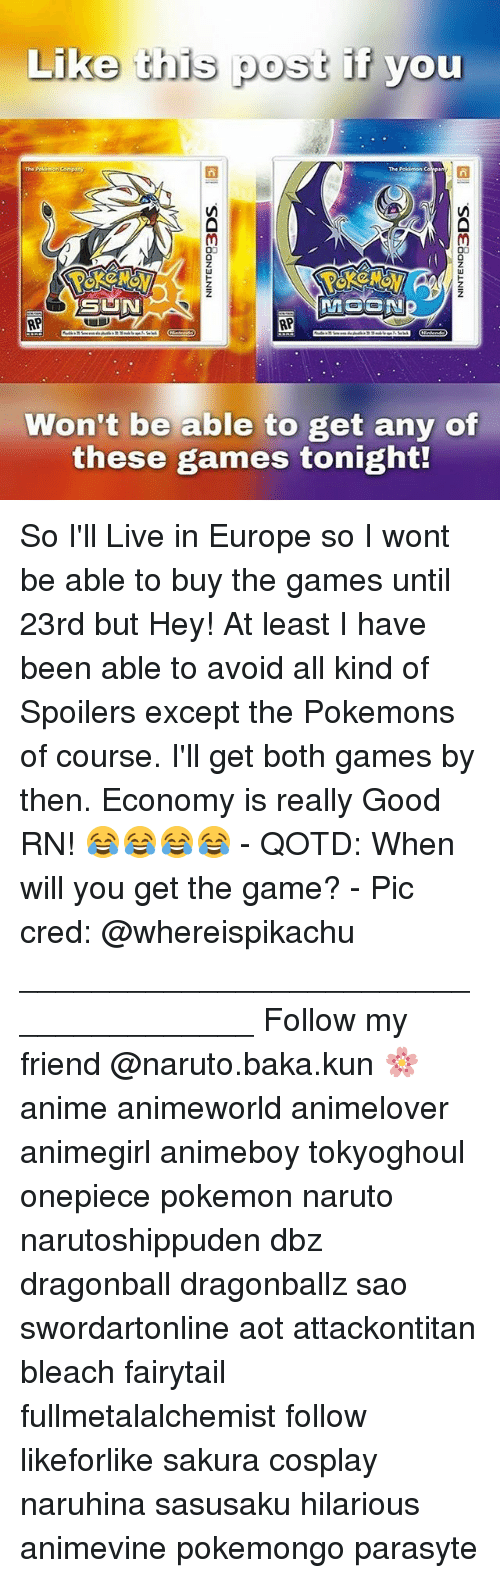 Memes, Naruto, and 🤖: Like this post if you  The Company  The Porinon  GINN  RP  RP  Won't be able to get any of  these games tonight! So I'll Live in Europe so I wont be able to buy the games until 23rd but Hey! At least I have been able to avoid all kind of Spoilers except the Pokemons of course. I'll get both games by then. Economy is really Good RN! 😂😂😂😂 - QOTD: When will you get the game? - Pic cred: @whereispikachu ______________________________________ Follow my friend @naruto.baka.kun 🌸 anime animeworld animelover animegirl animeboy tokyoghoul onepiece pokemon naruto narutoshippuden dbz dragonball dragonballz sao swordartonline aot attackontitan bleach fairytail fullmetalalchemist follow likeforlike sakura cosplay naruhina sasusaku hilarious animevine pokemongo parasyte